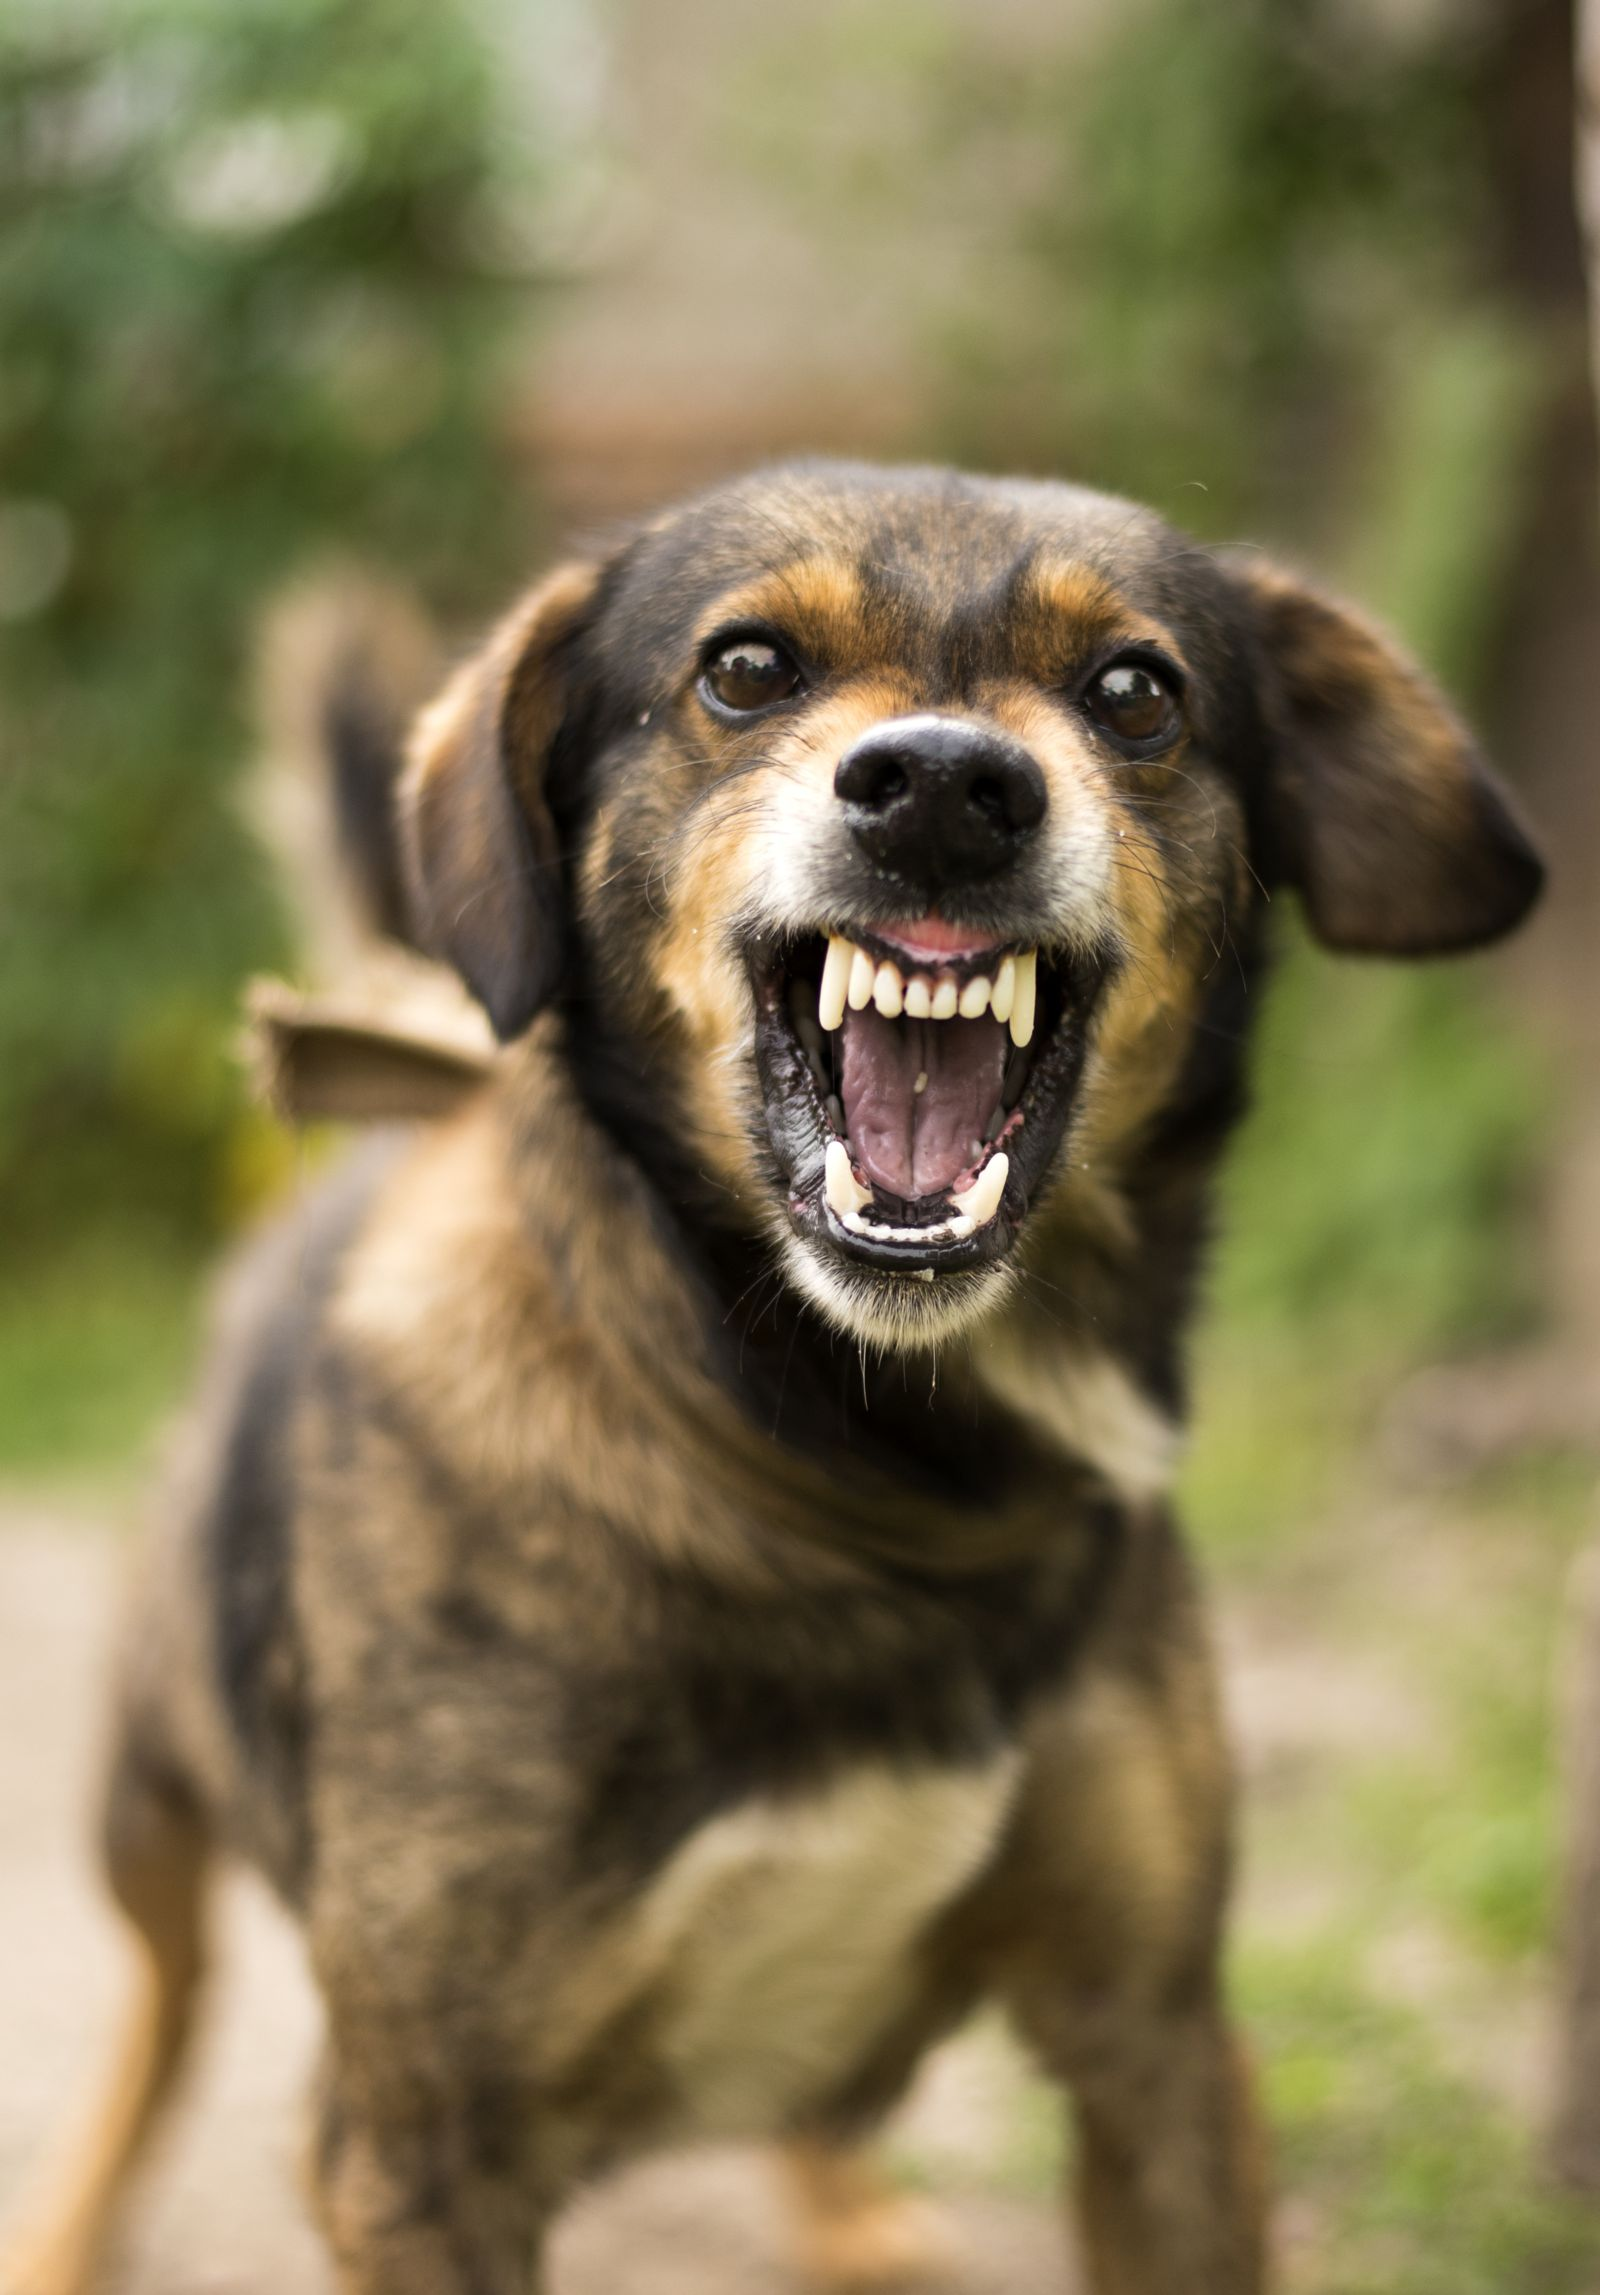 Dog Barking and Showing Its Teeth